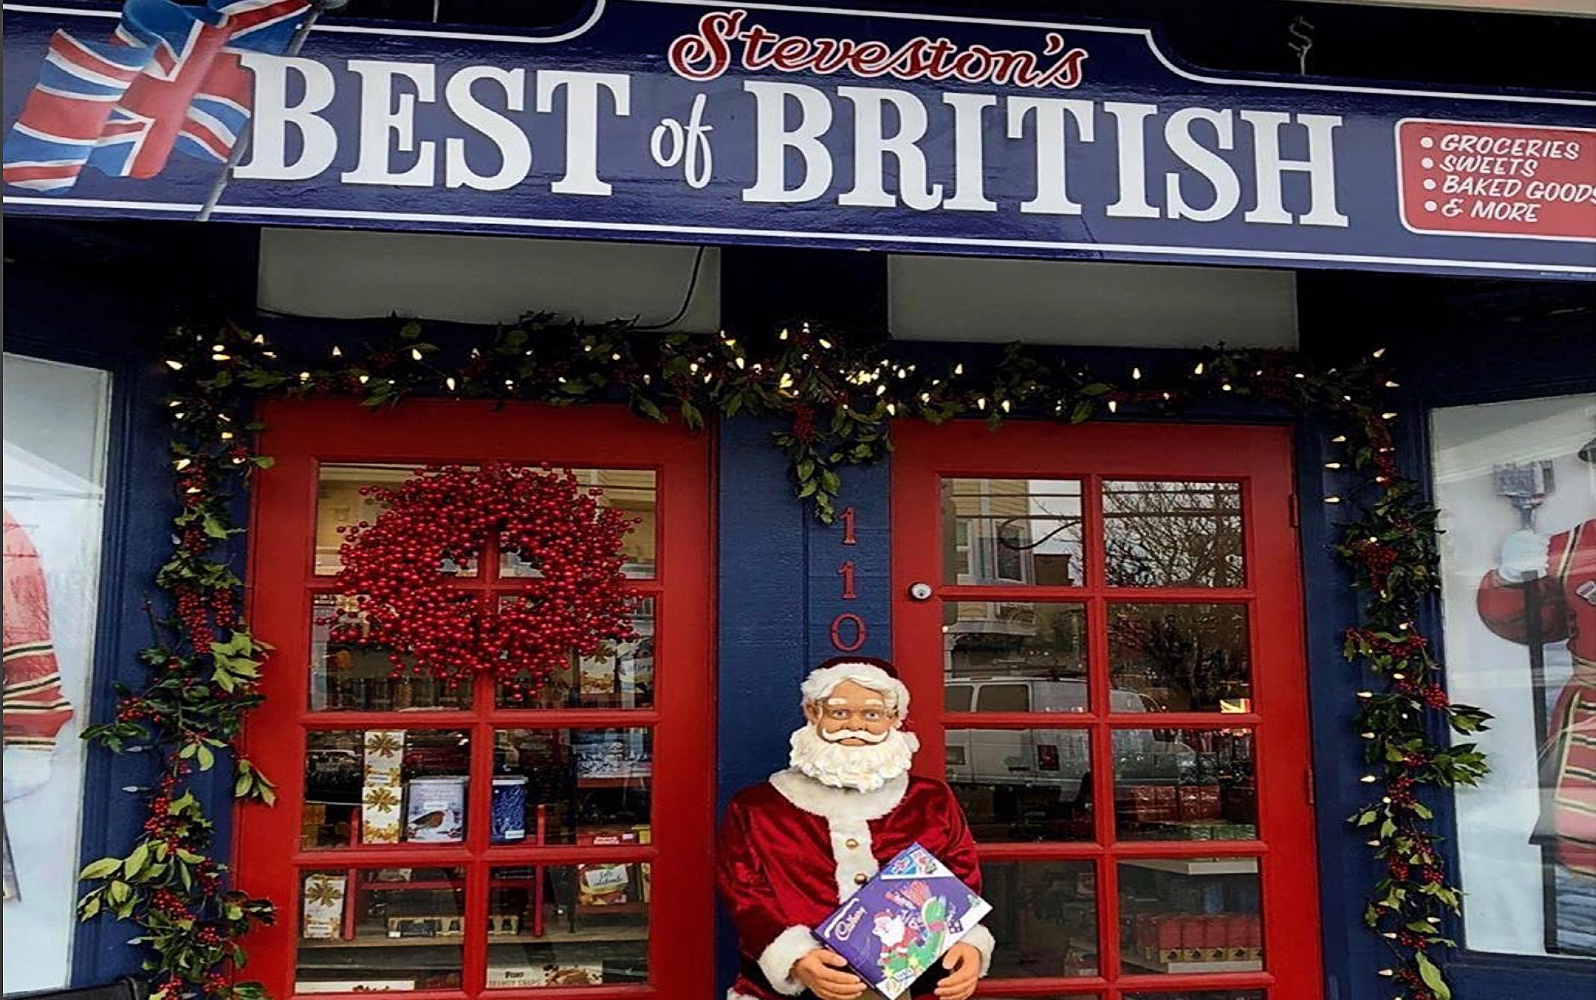 The storefront of Steveston's Best of British